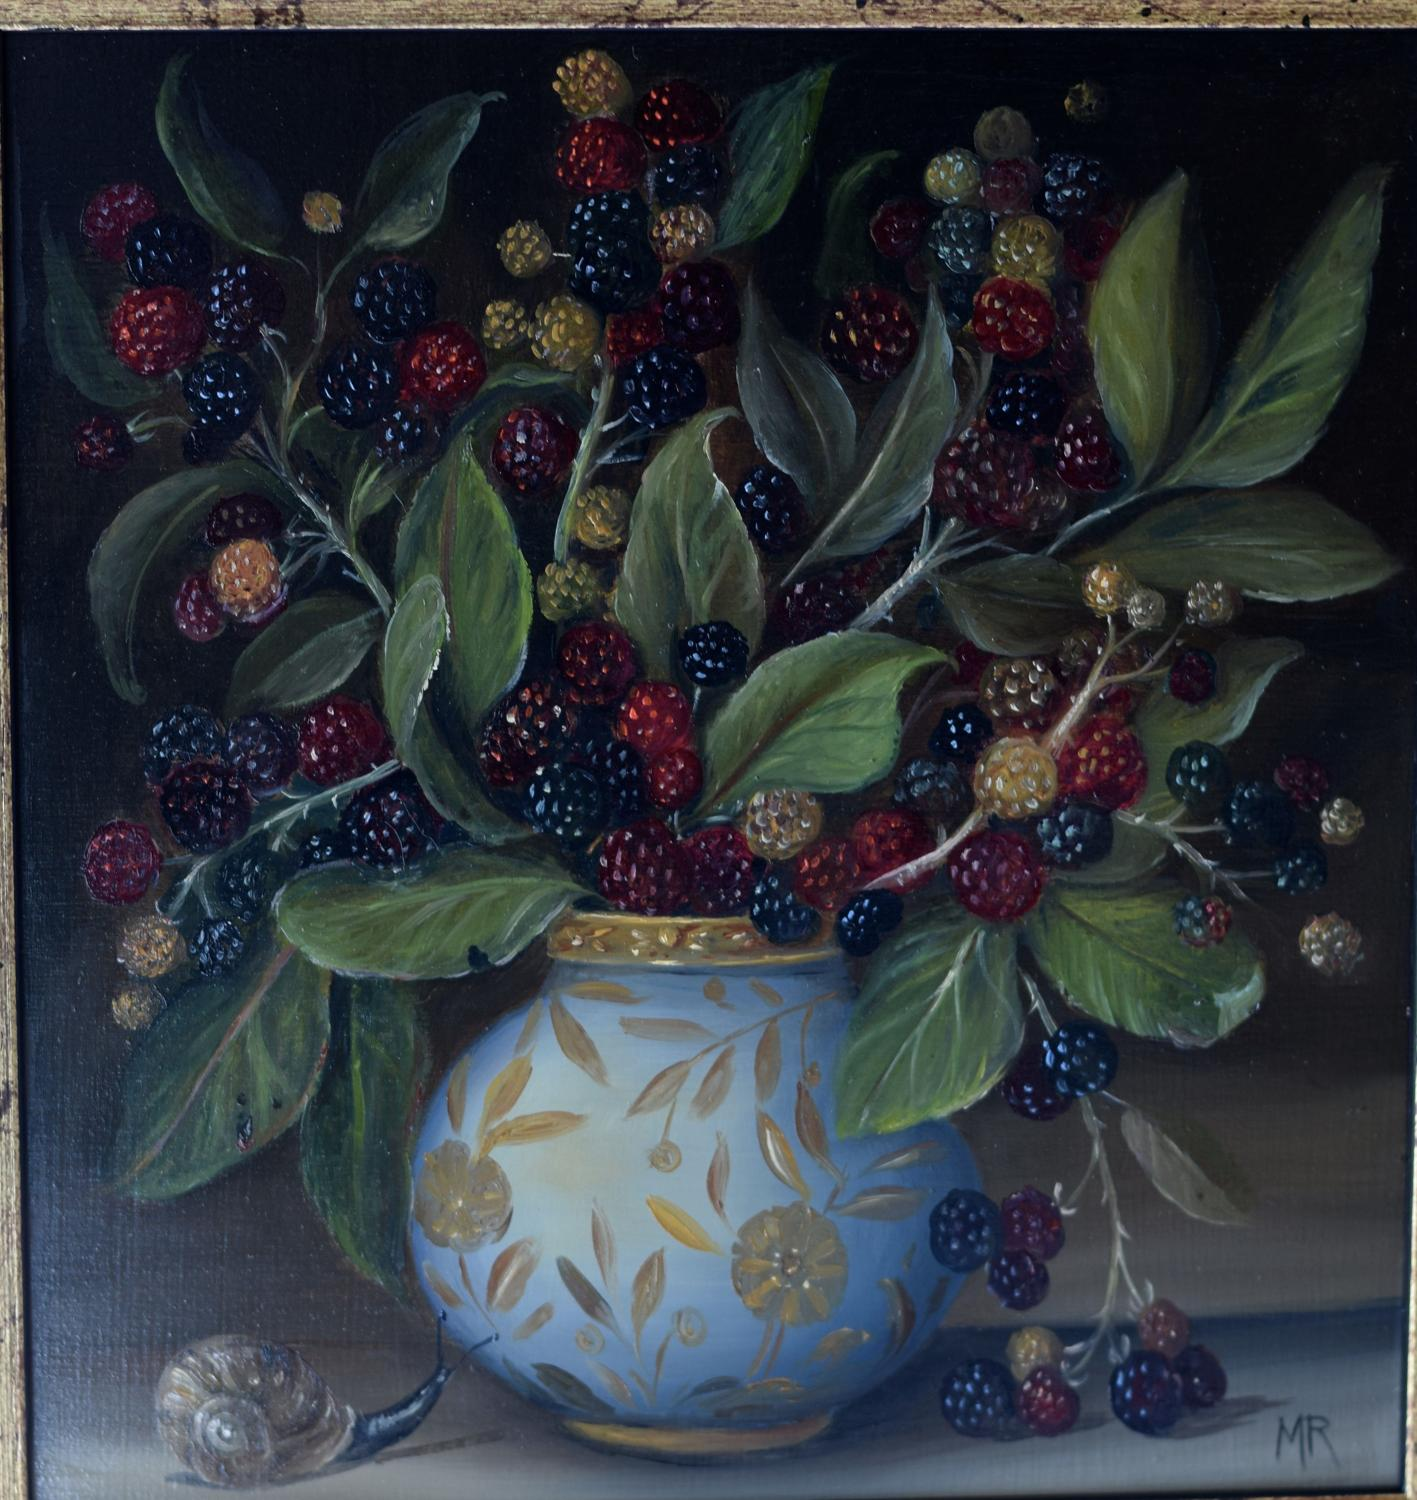 Blackberries and snail